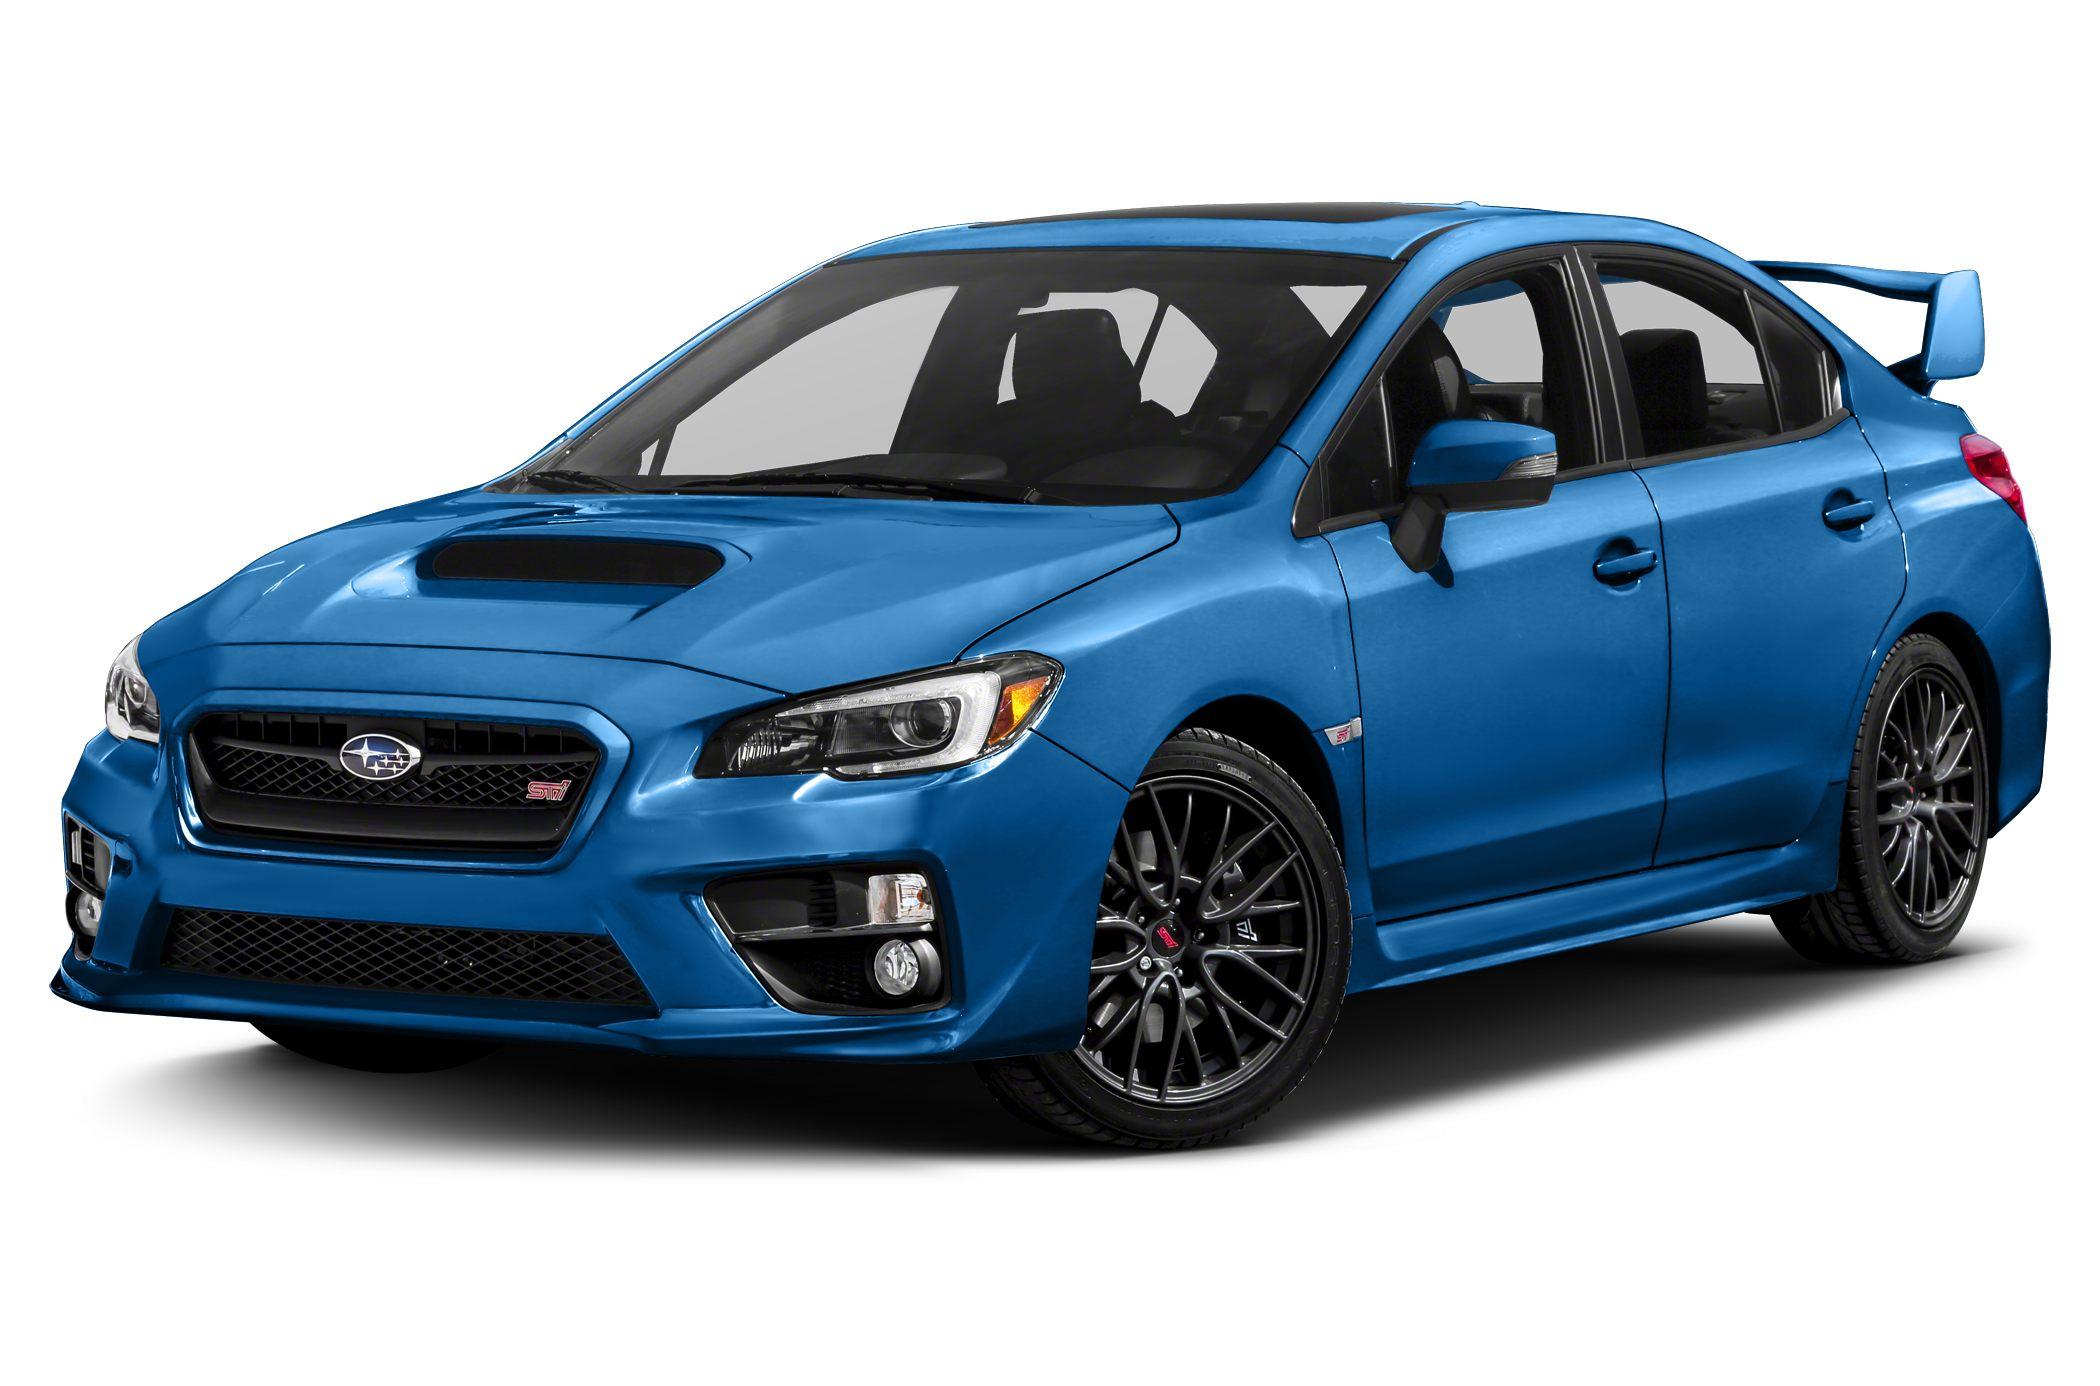 2015 subaru wrx sti autoblog. Black Bedroom Furniture Sets. Home Design Ideas